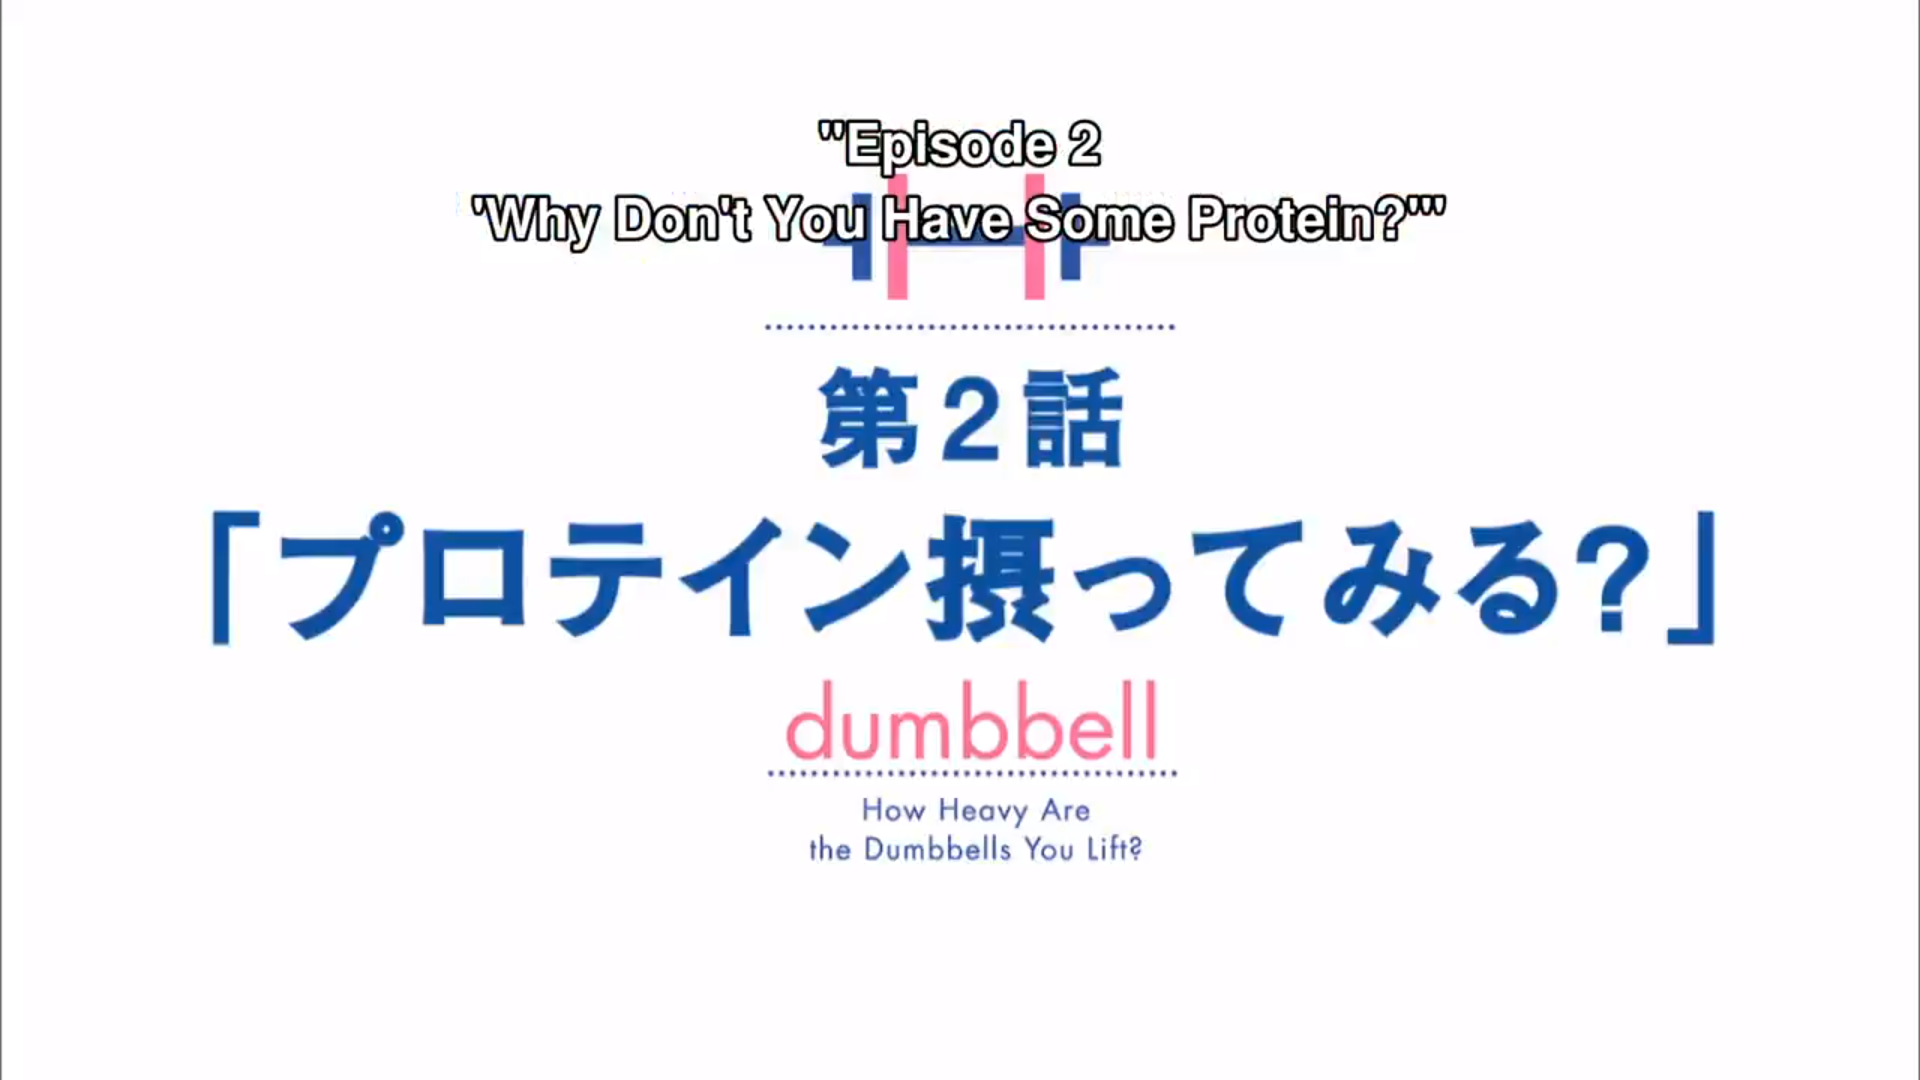 Why Don T You Have Some Protein Dumbbell Nan Kilo Moteru Wiki